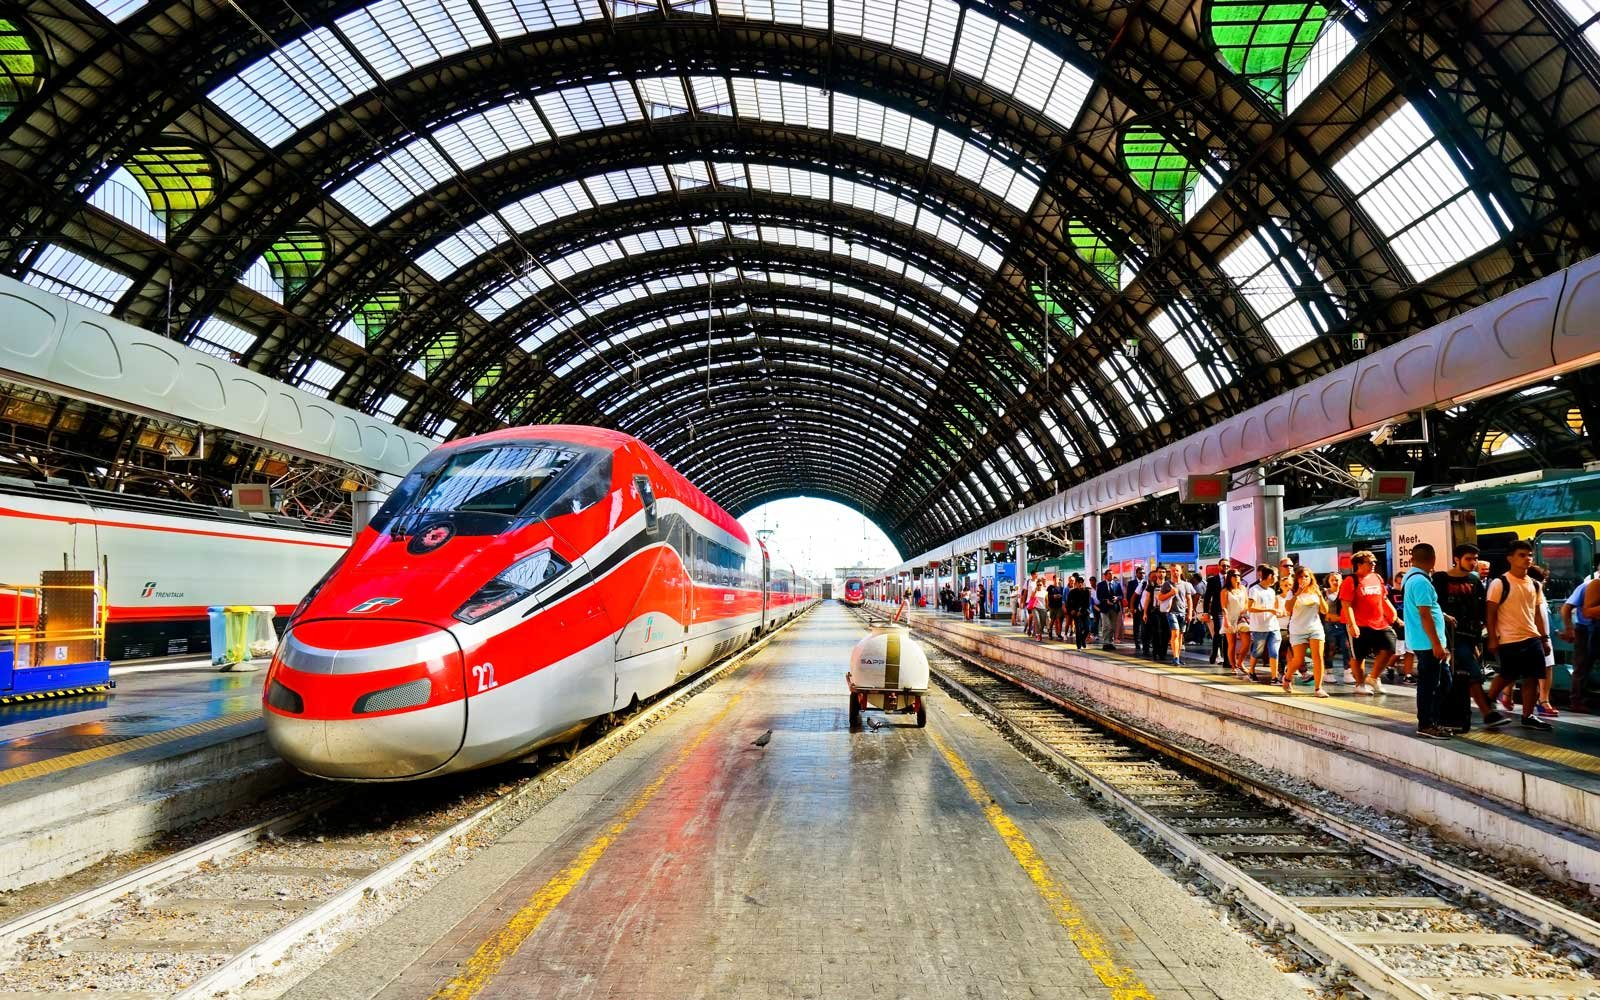 High-speed train at Milano Centrale railway station in Milan, Italy